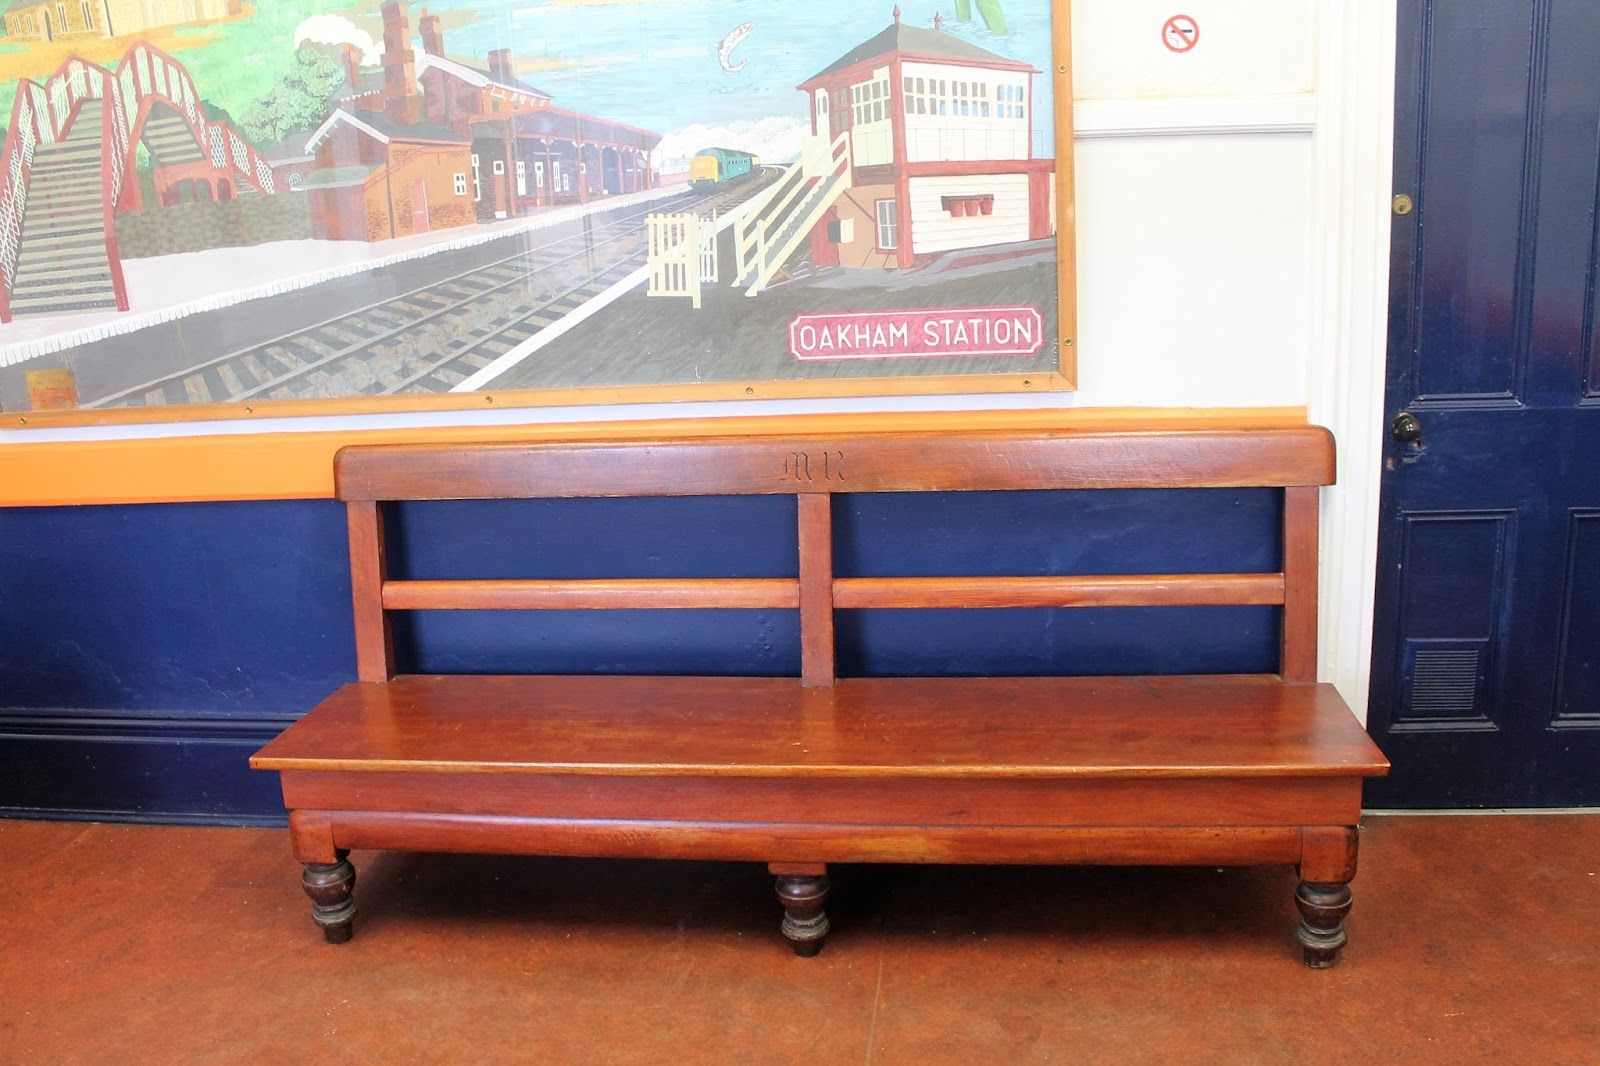 Martin Brookes Oakham Rutland England Old Midland Railway Bench Oakham Railway Station Waiting